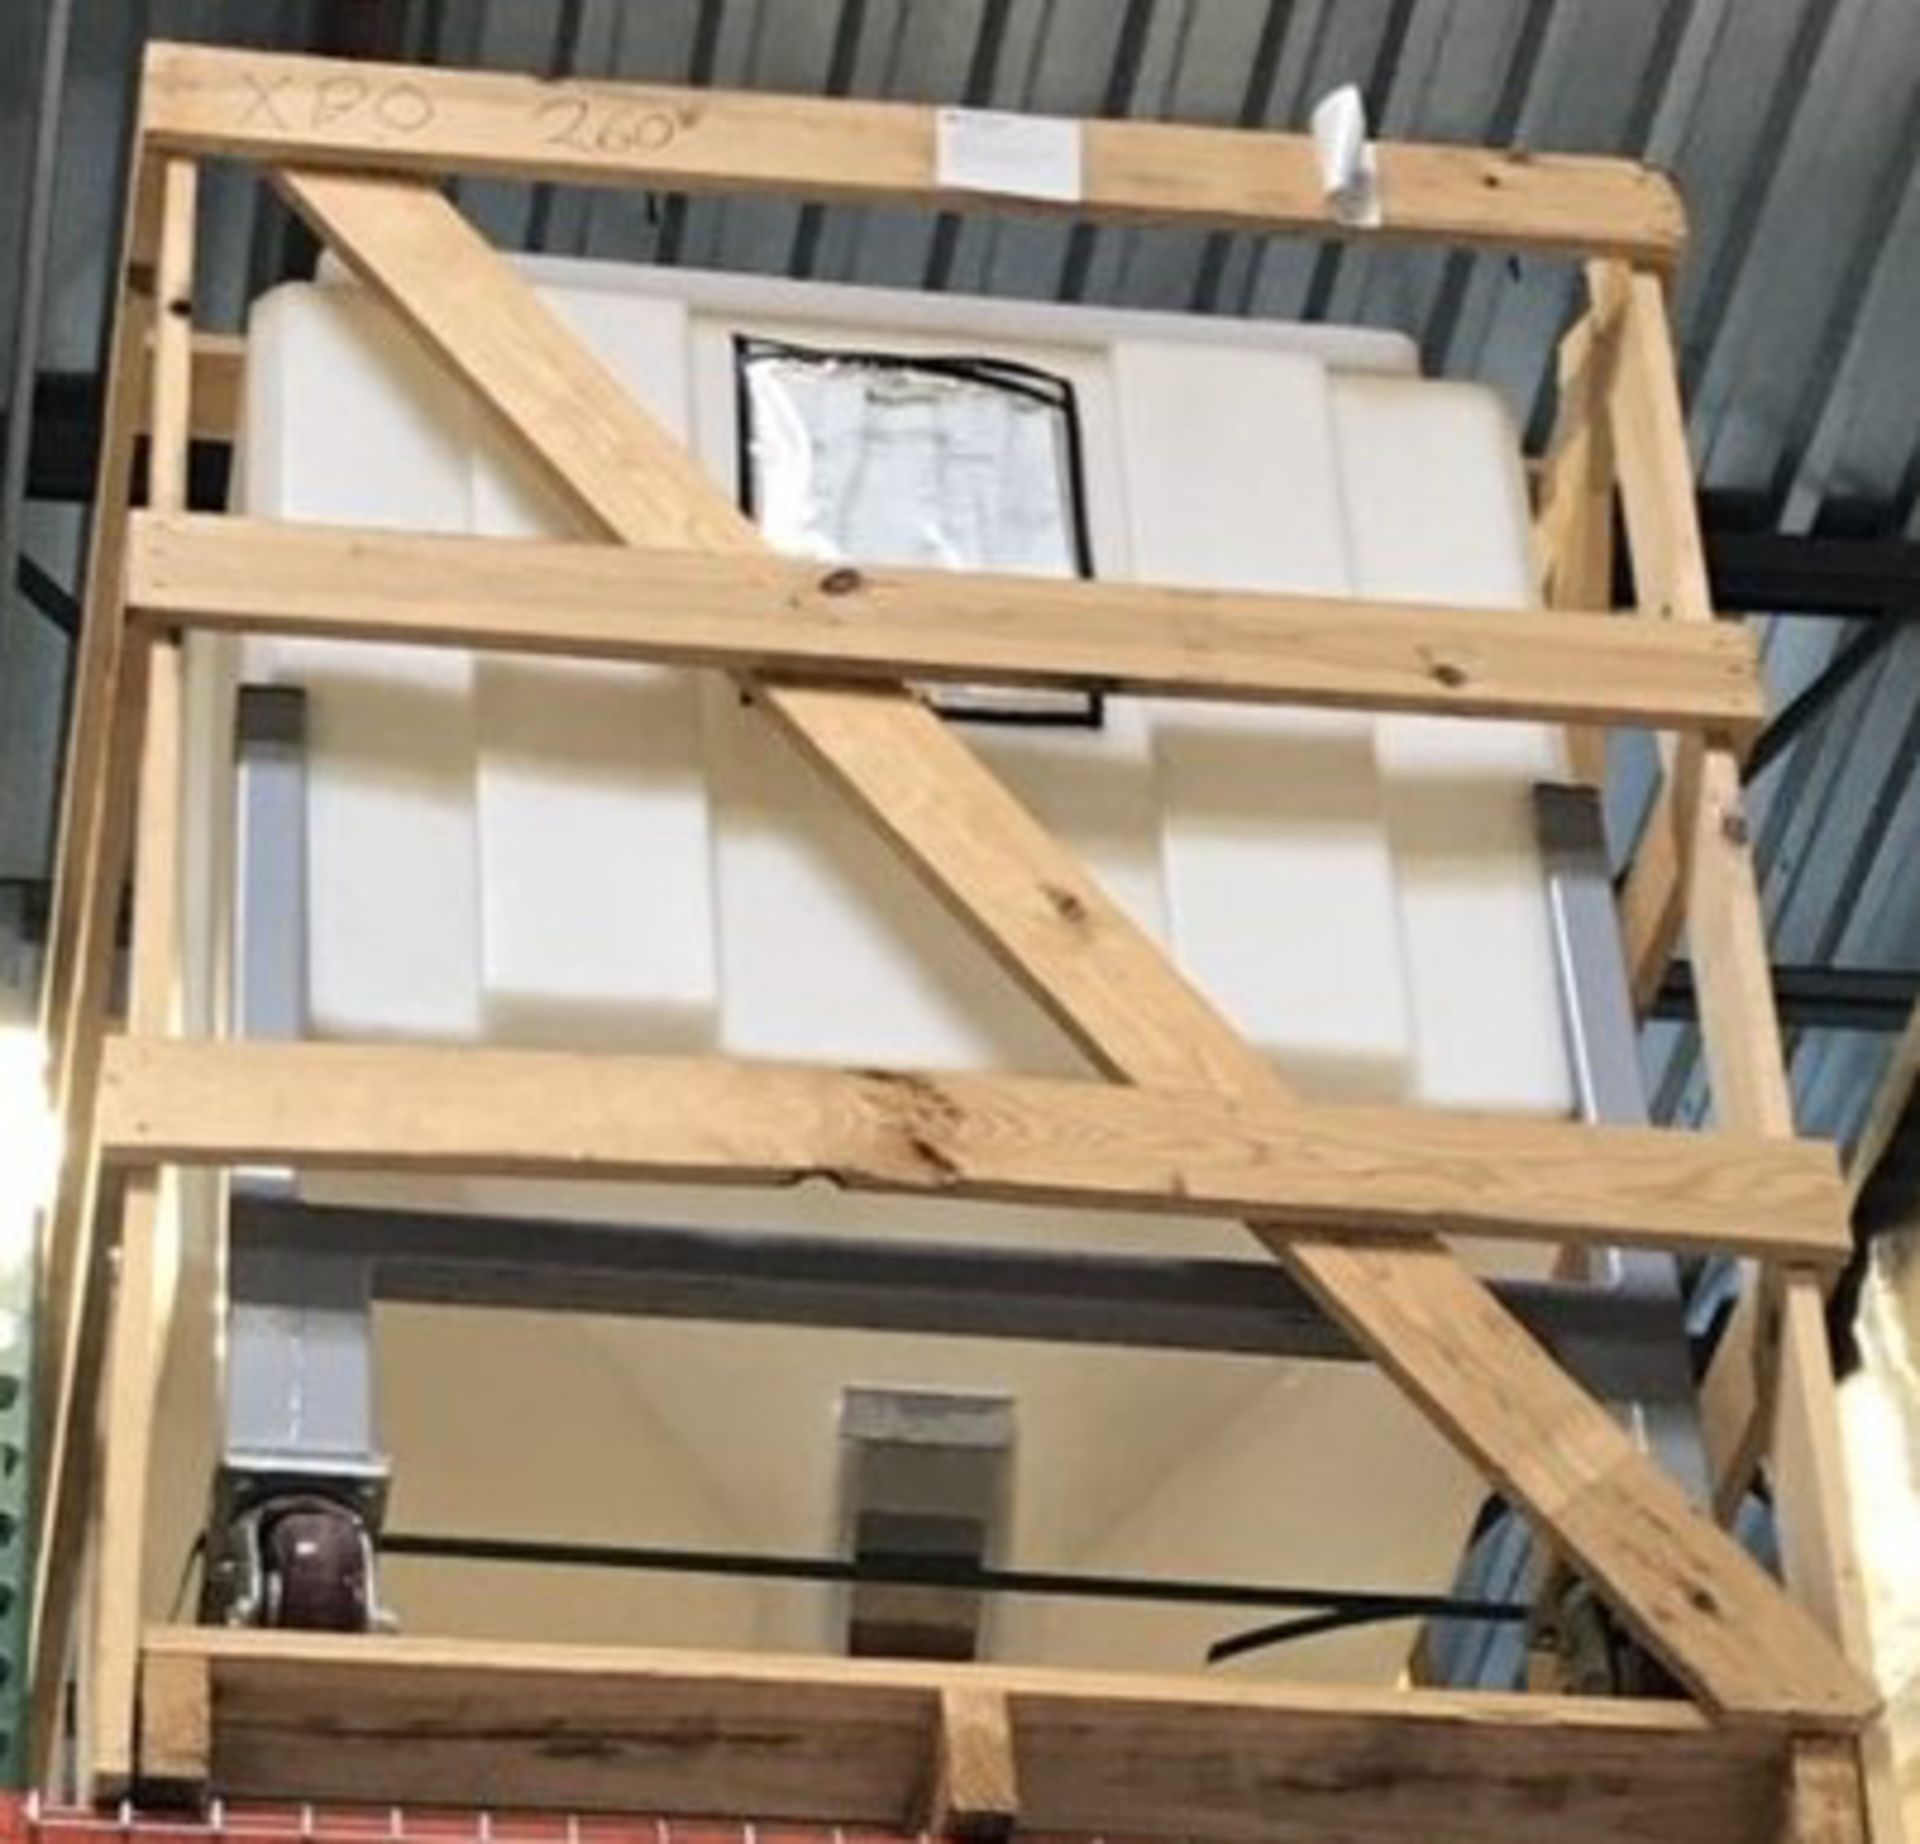 PORTABLE MATERIAL STORAGE BIN [RIGGING FEES FOR LOT# 39 - $25 USD PLUS APPLICABLE TAXES]